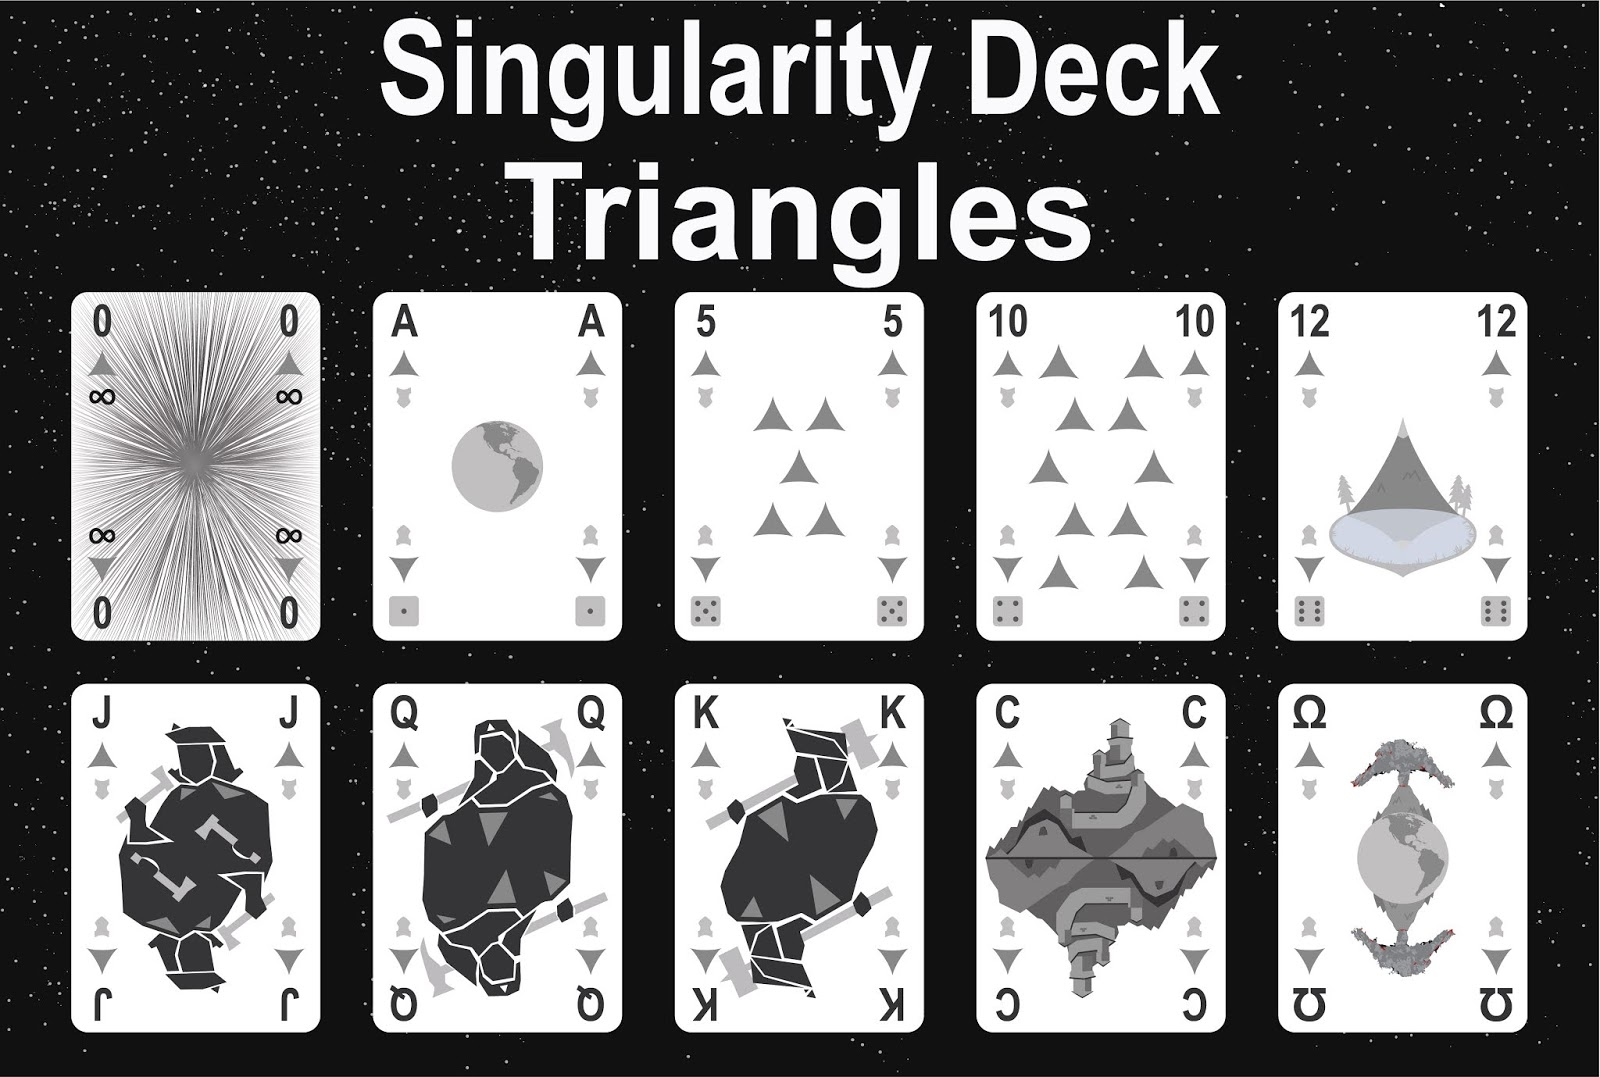 The Singularity Deck - Triangles Art